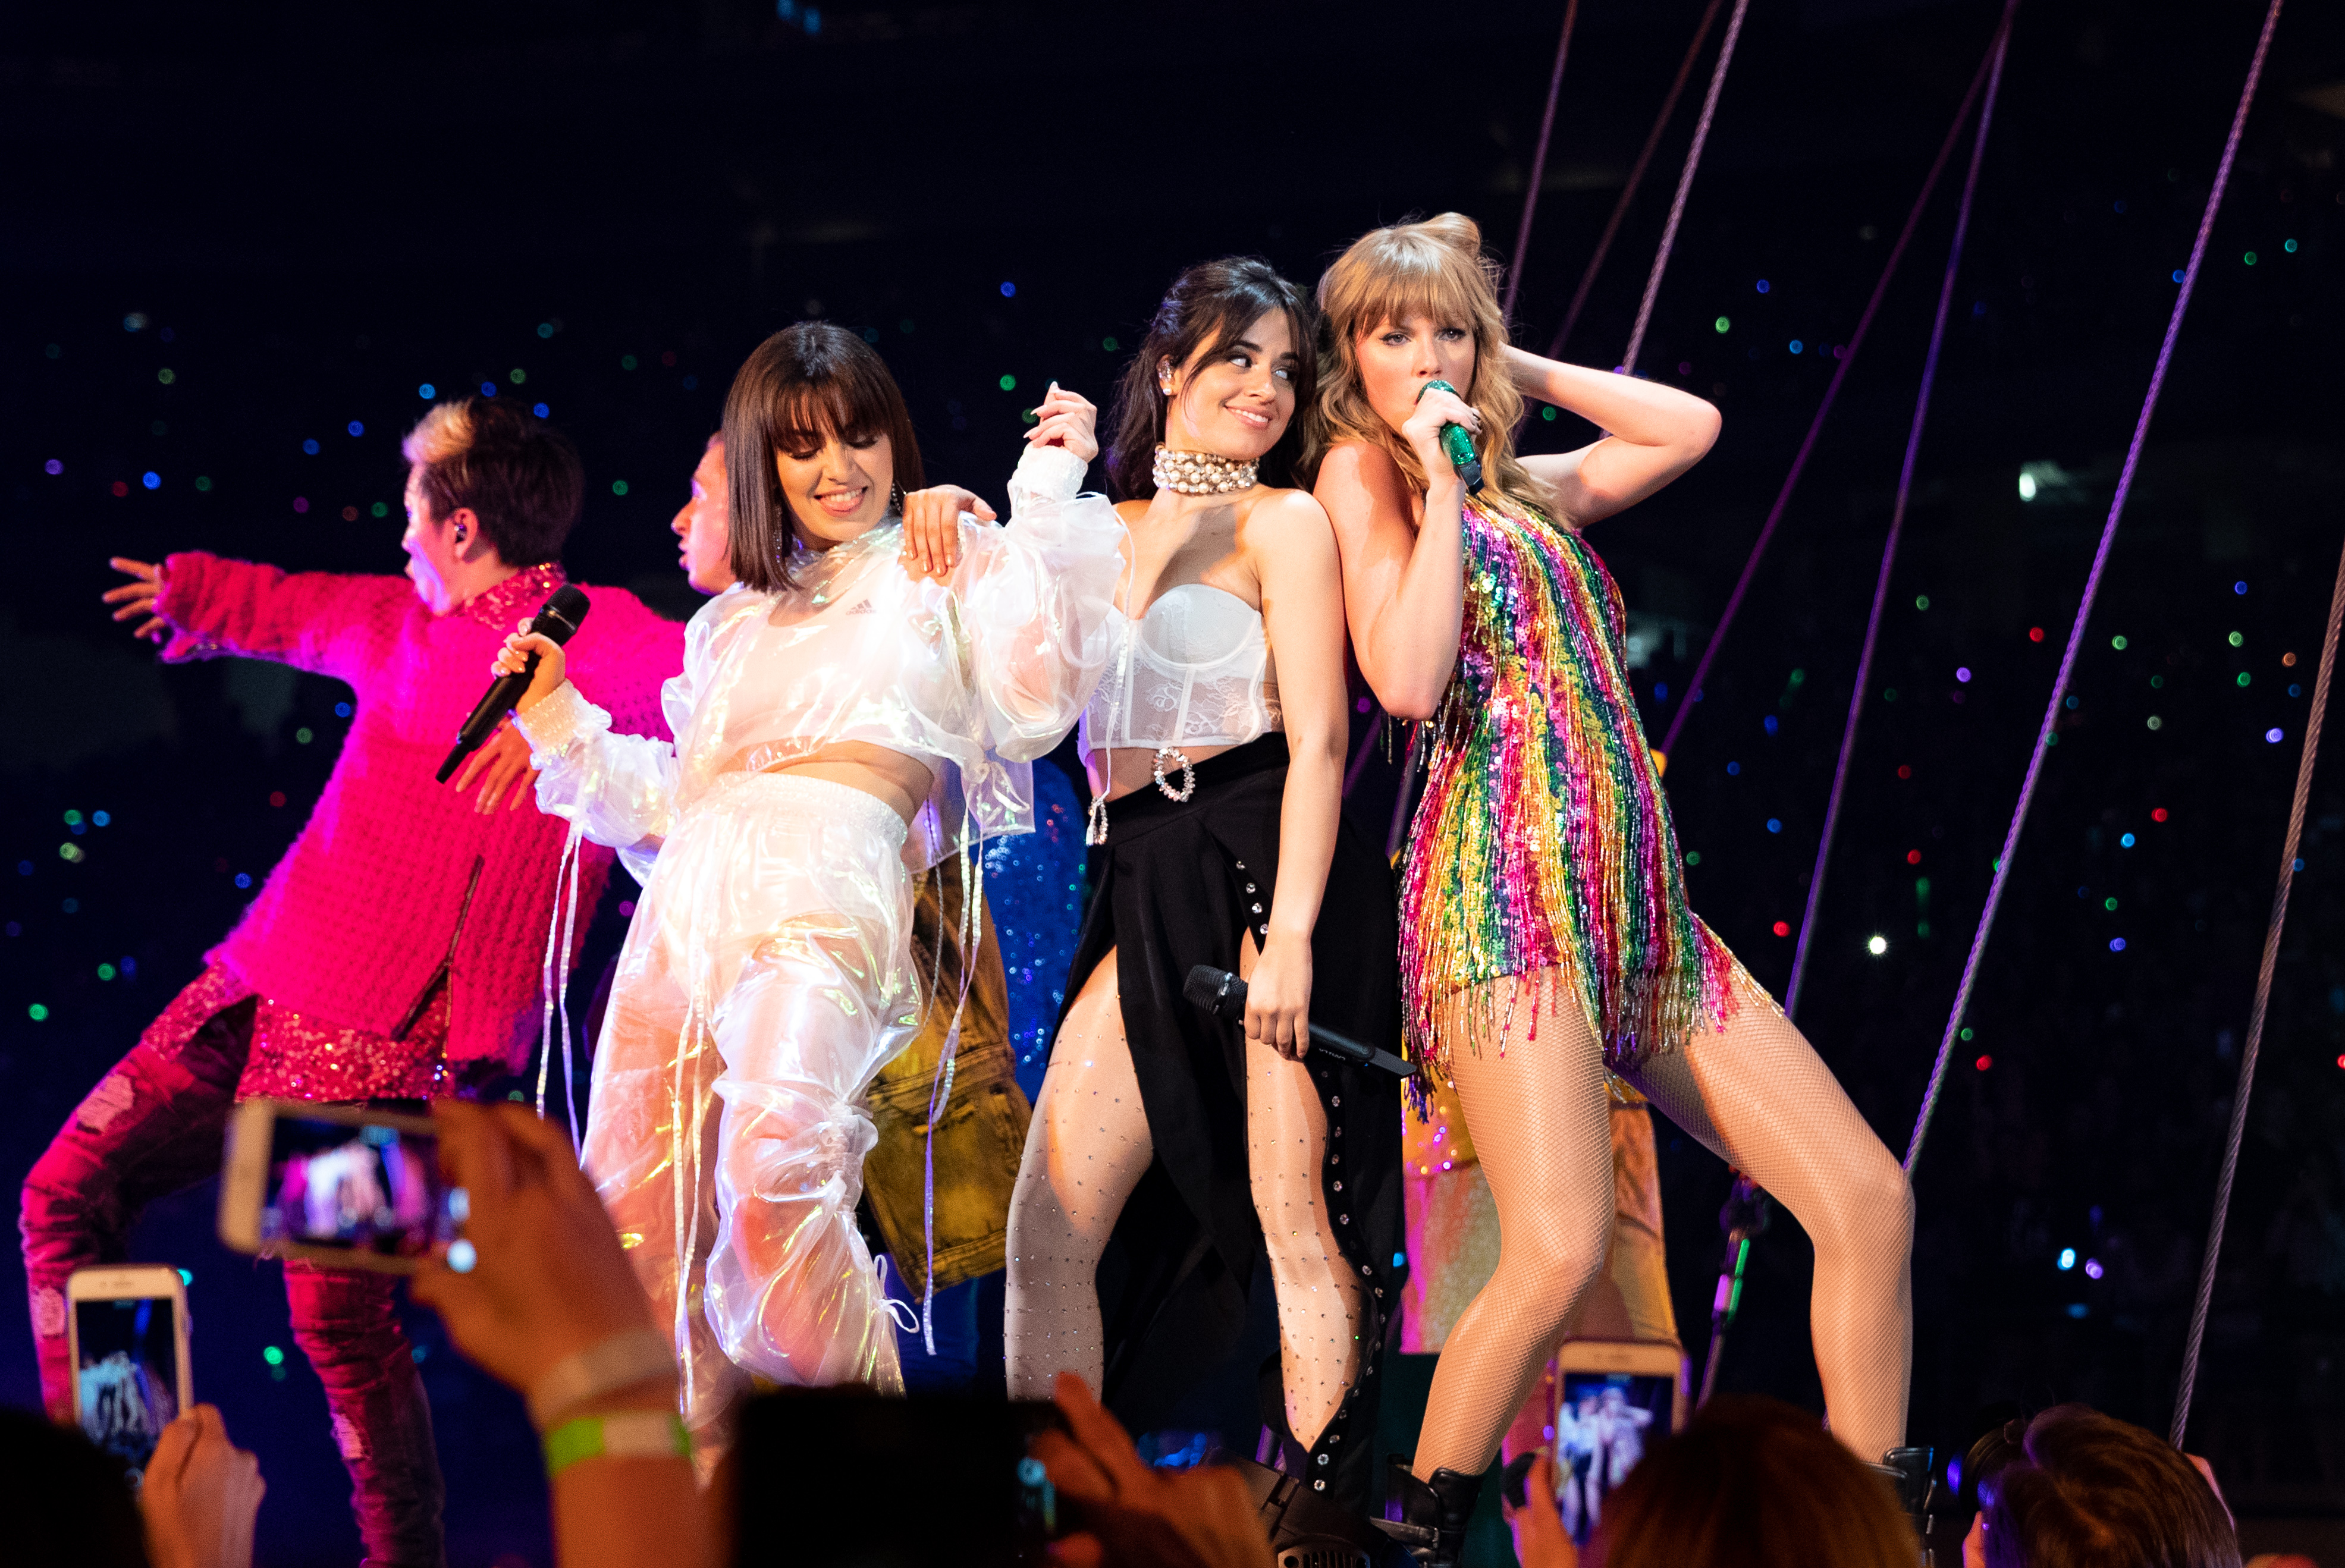 Charli XCX, Camila Cabello and Taylor Swift perform onstage